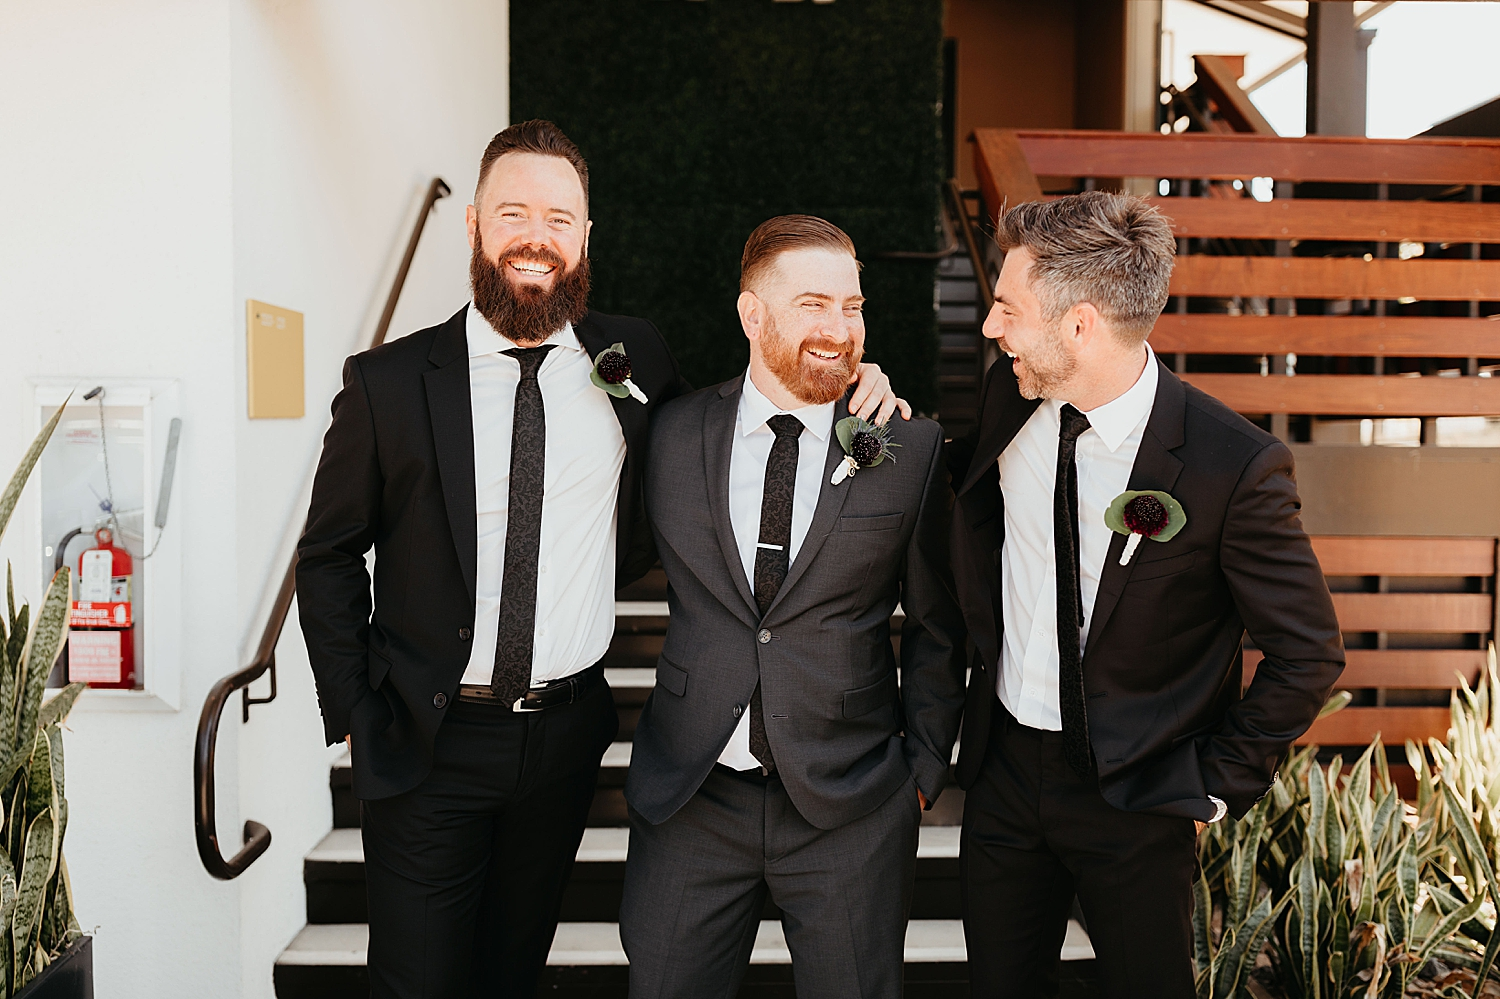 The-Wood-Shed-Booze-Brothers-Wedding-37.jpg